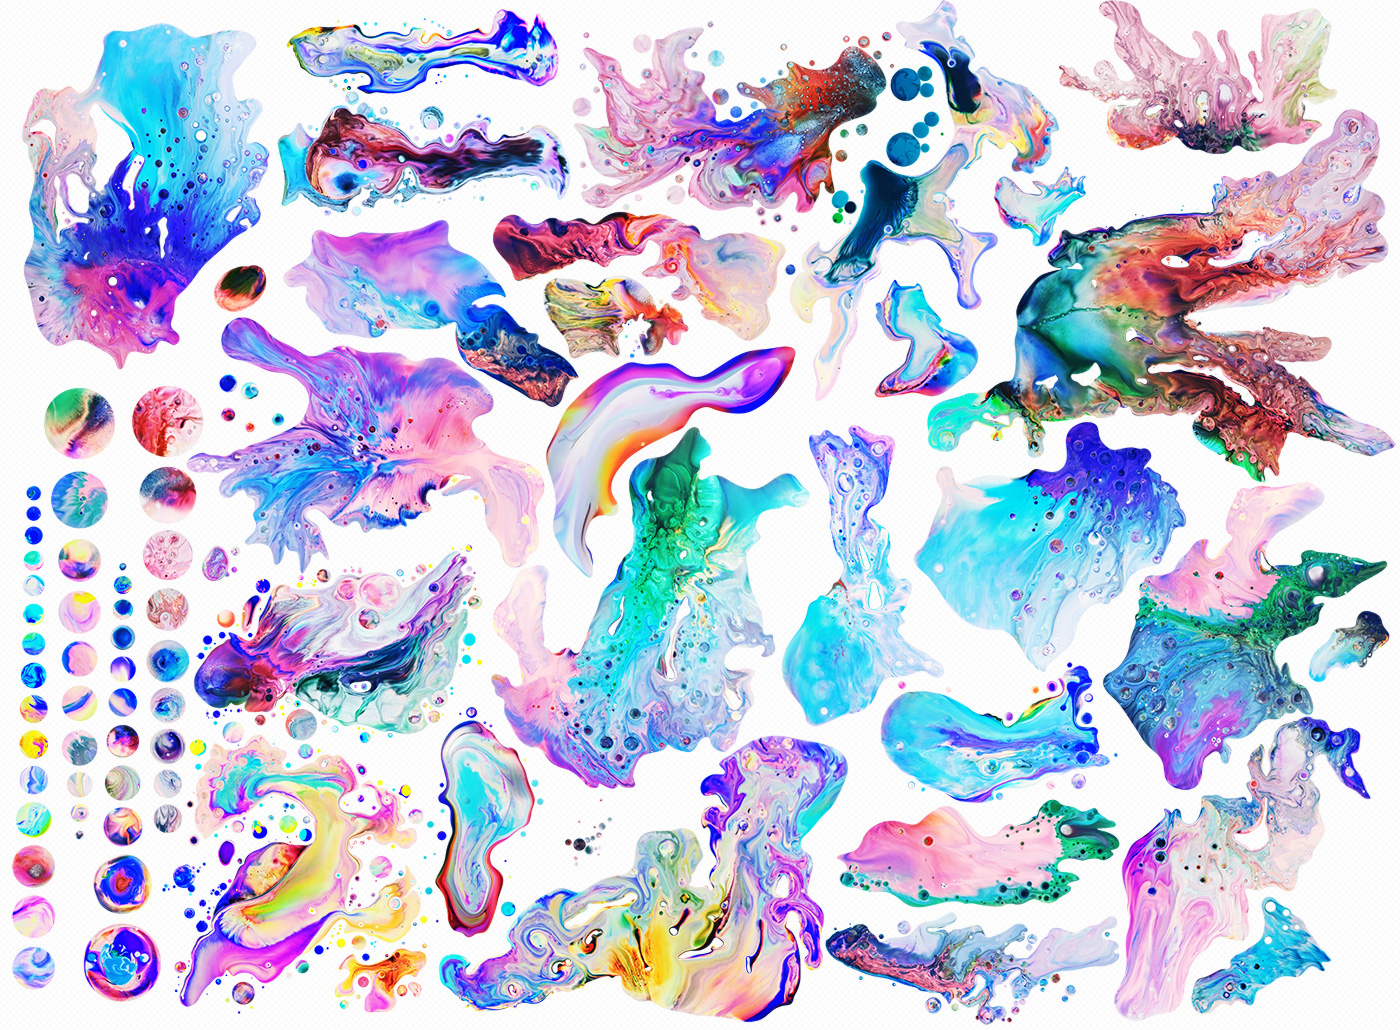 Digital paintings created for Adobe Indesign